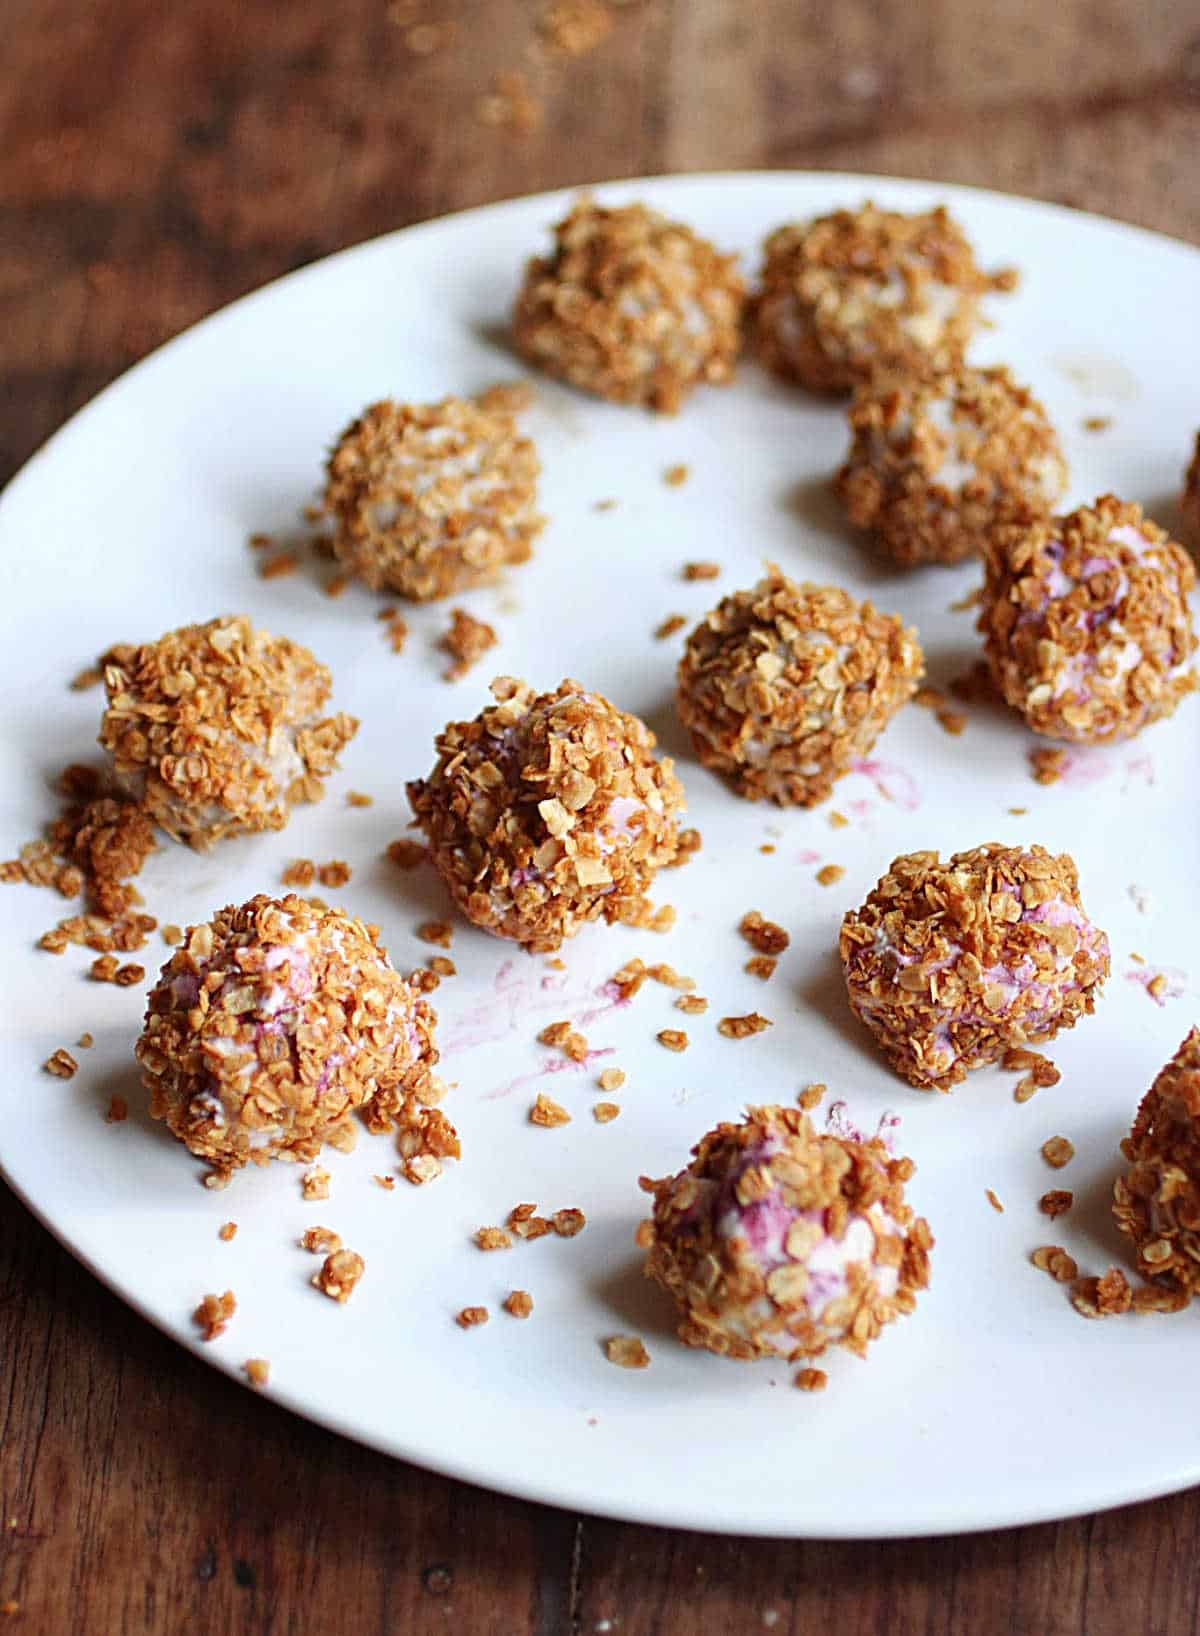 Small ice cream truffles covered in granola on white plate